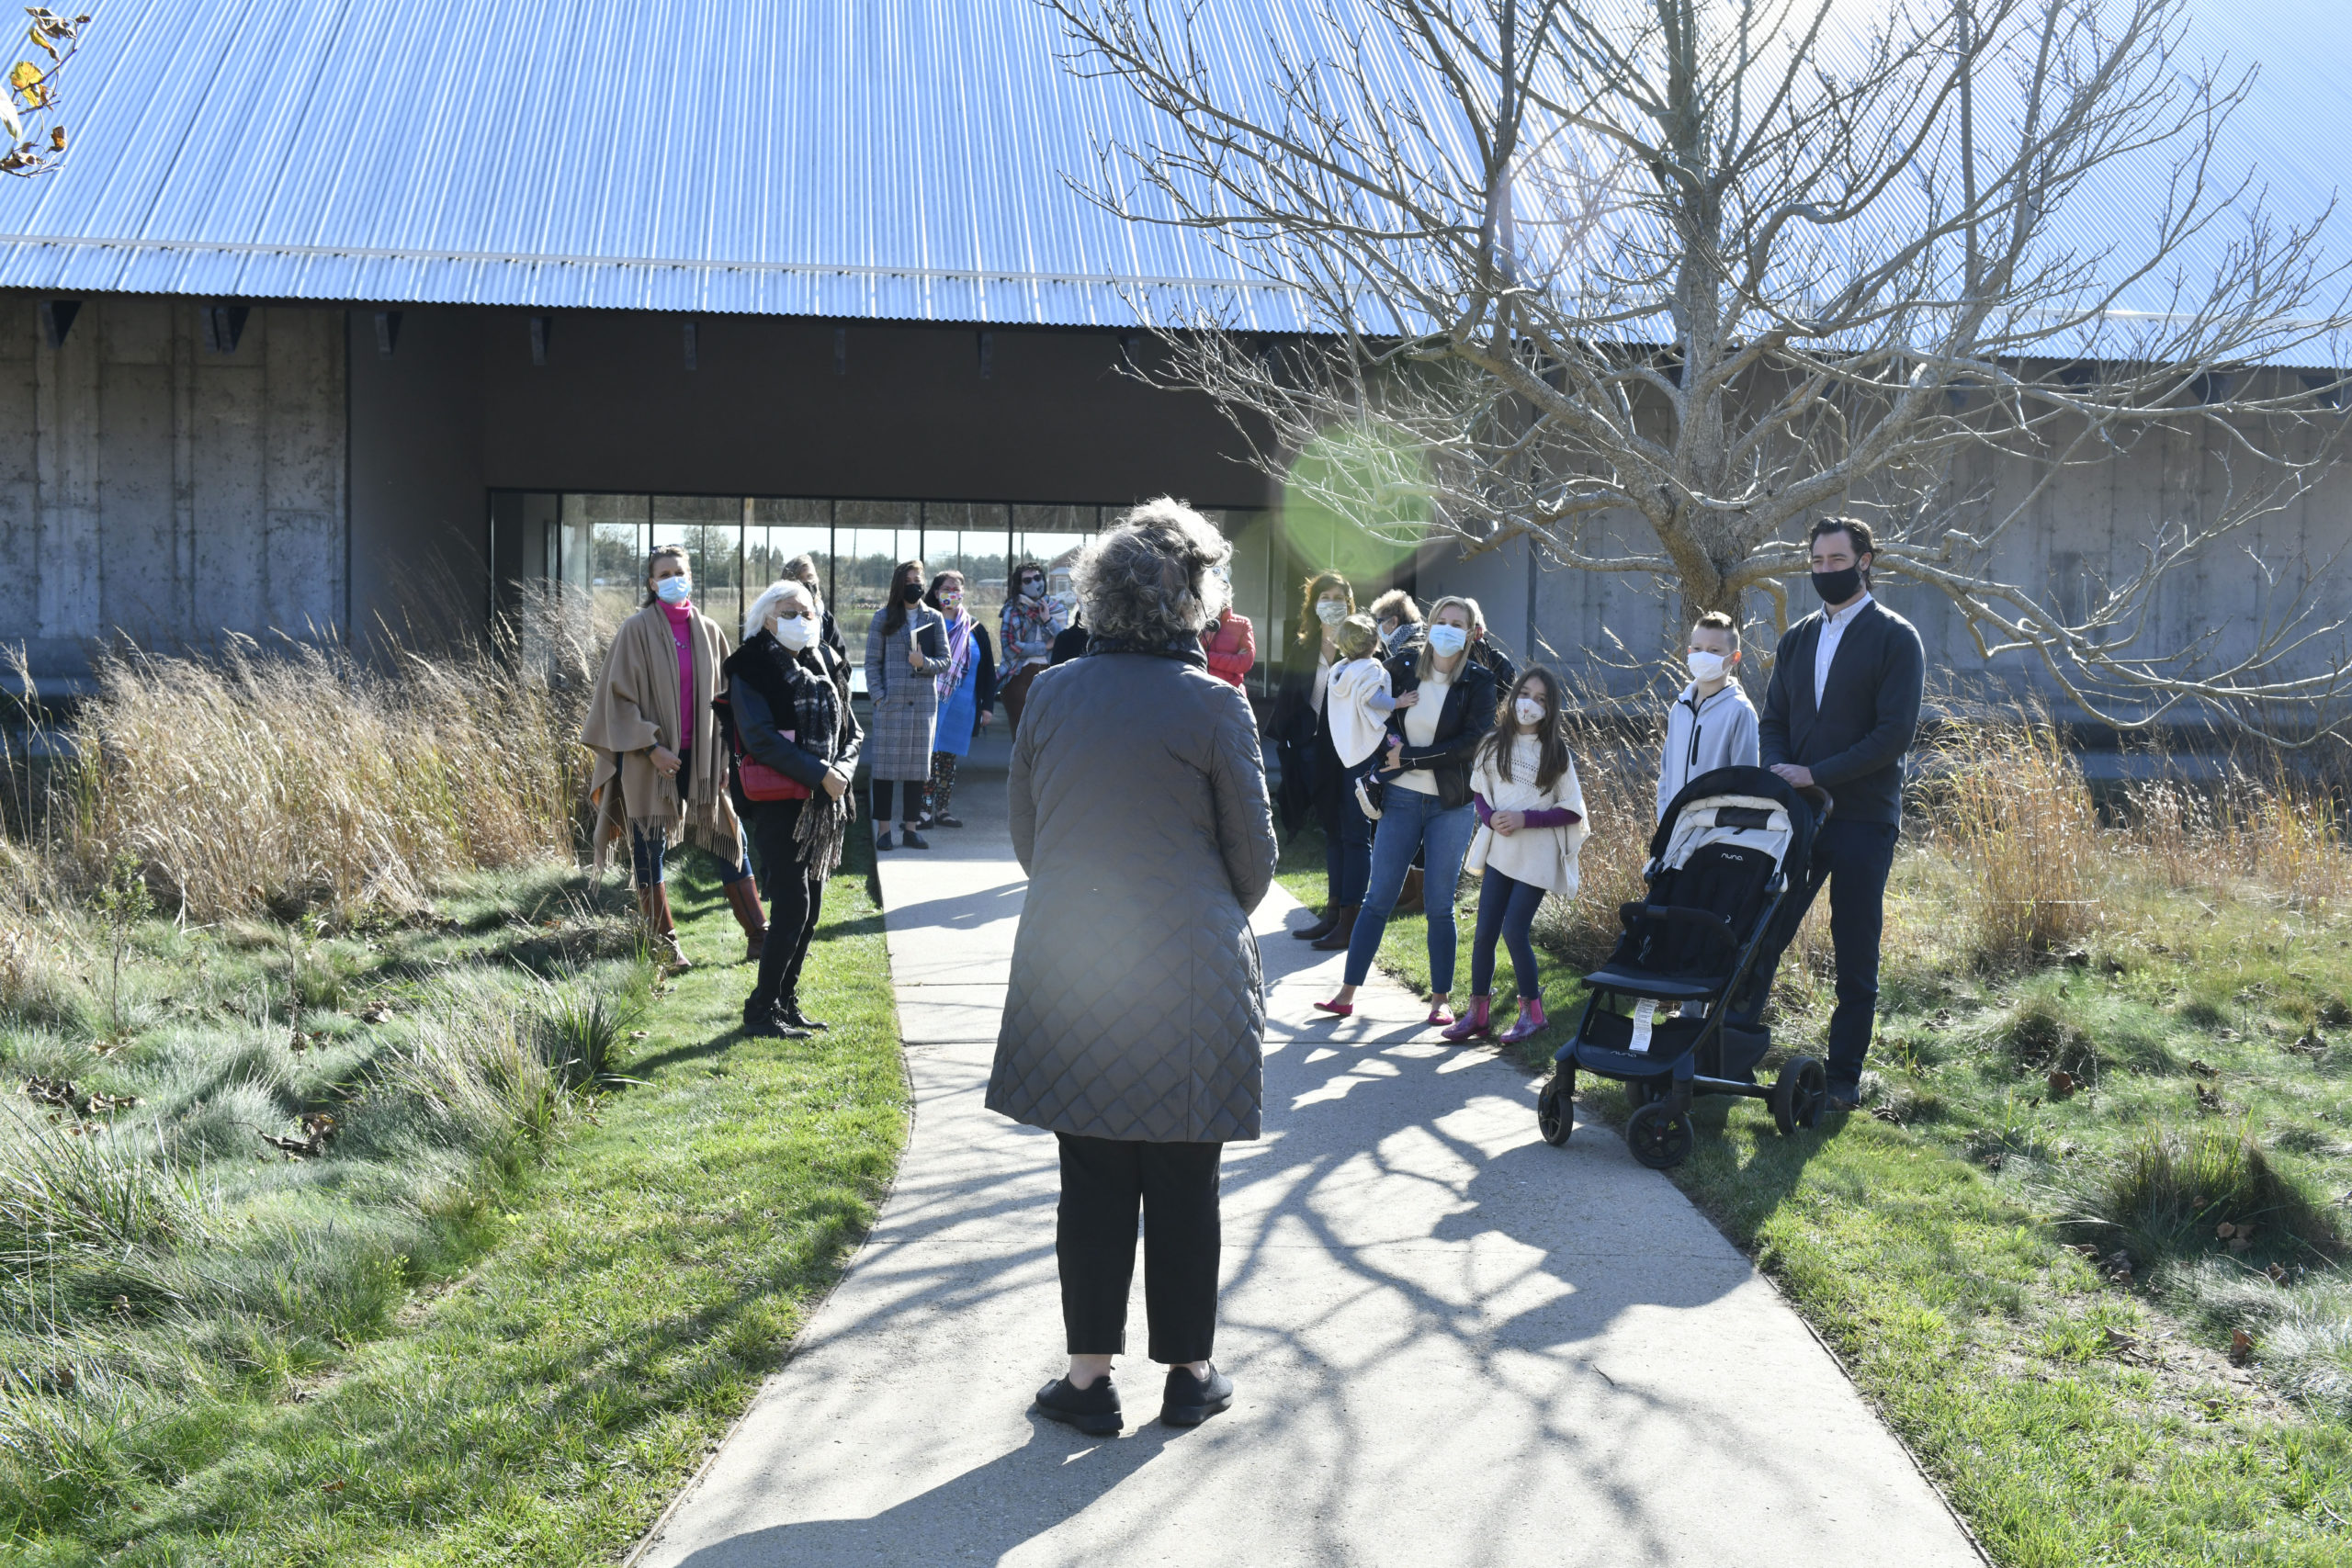 Parrish Art Museum curator Alicia Longwell takes Business Alliance members on a tour of